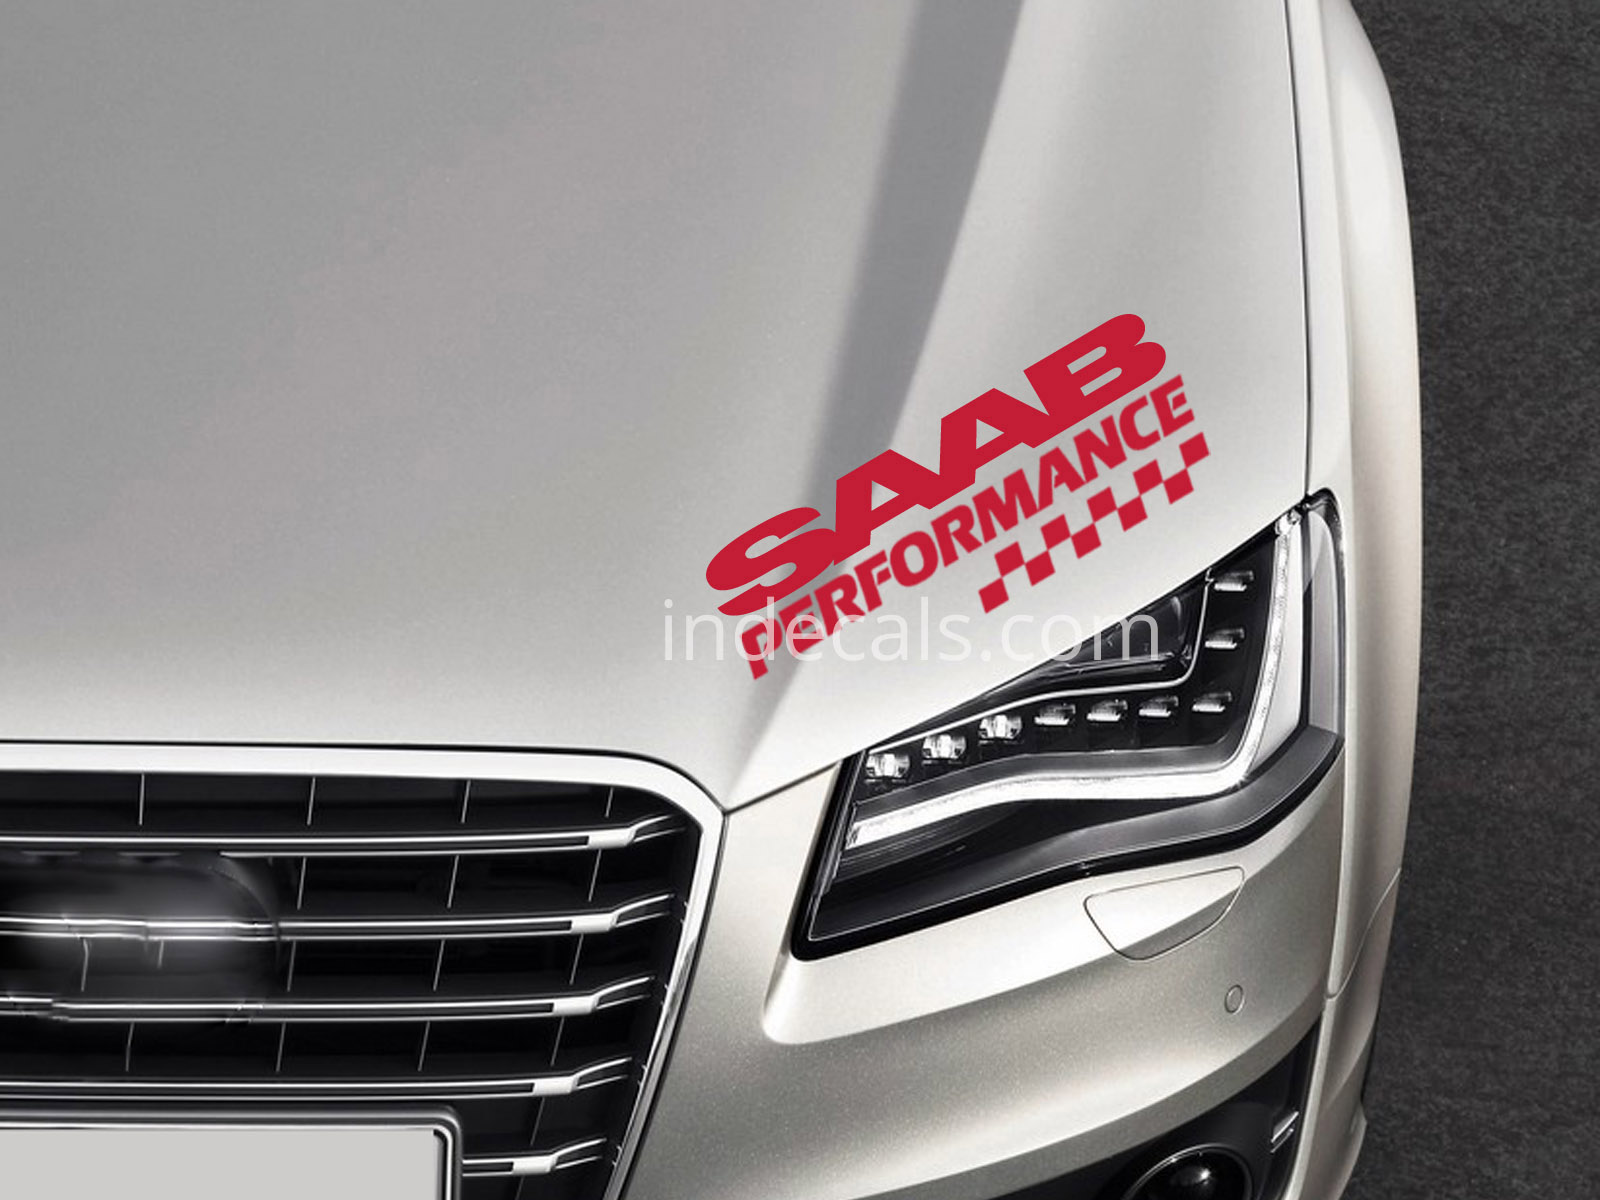 1 x Saab Performance Sticker - Red